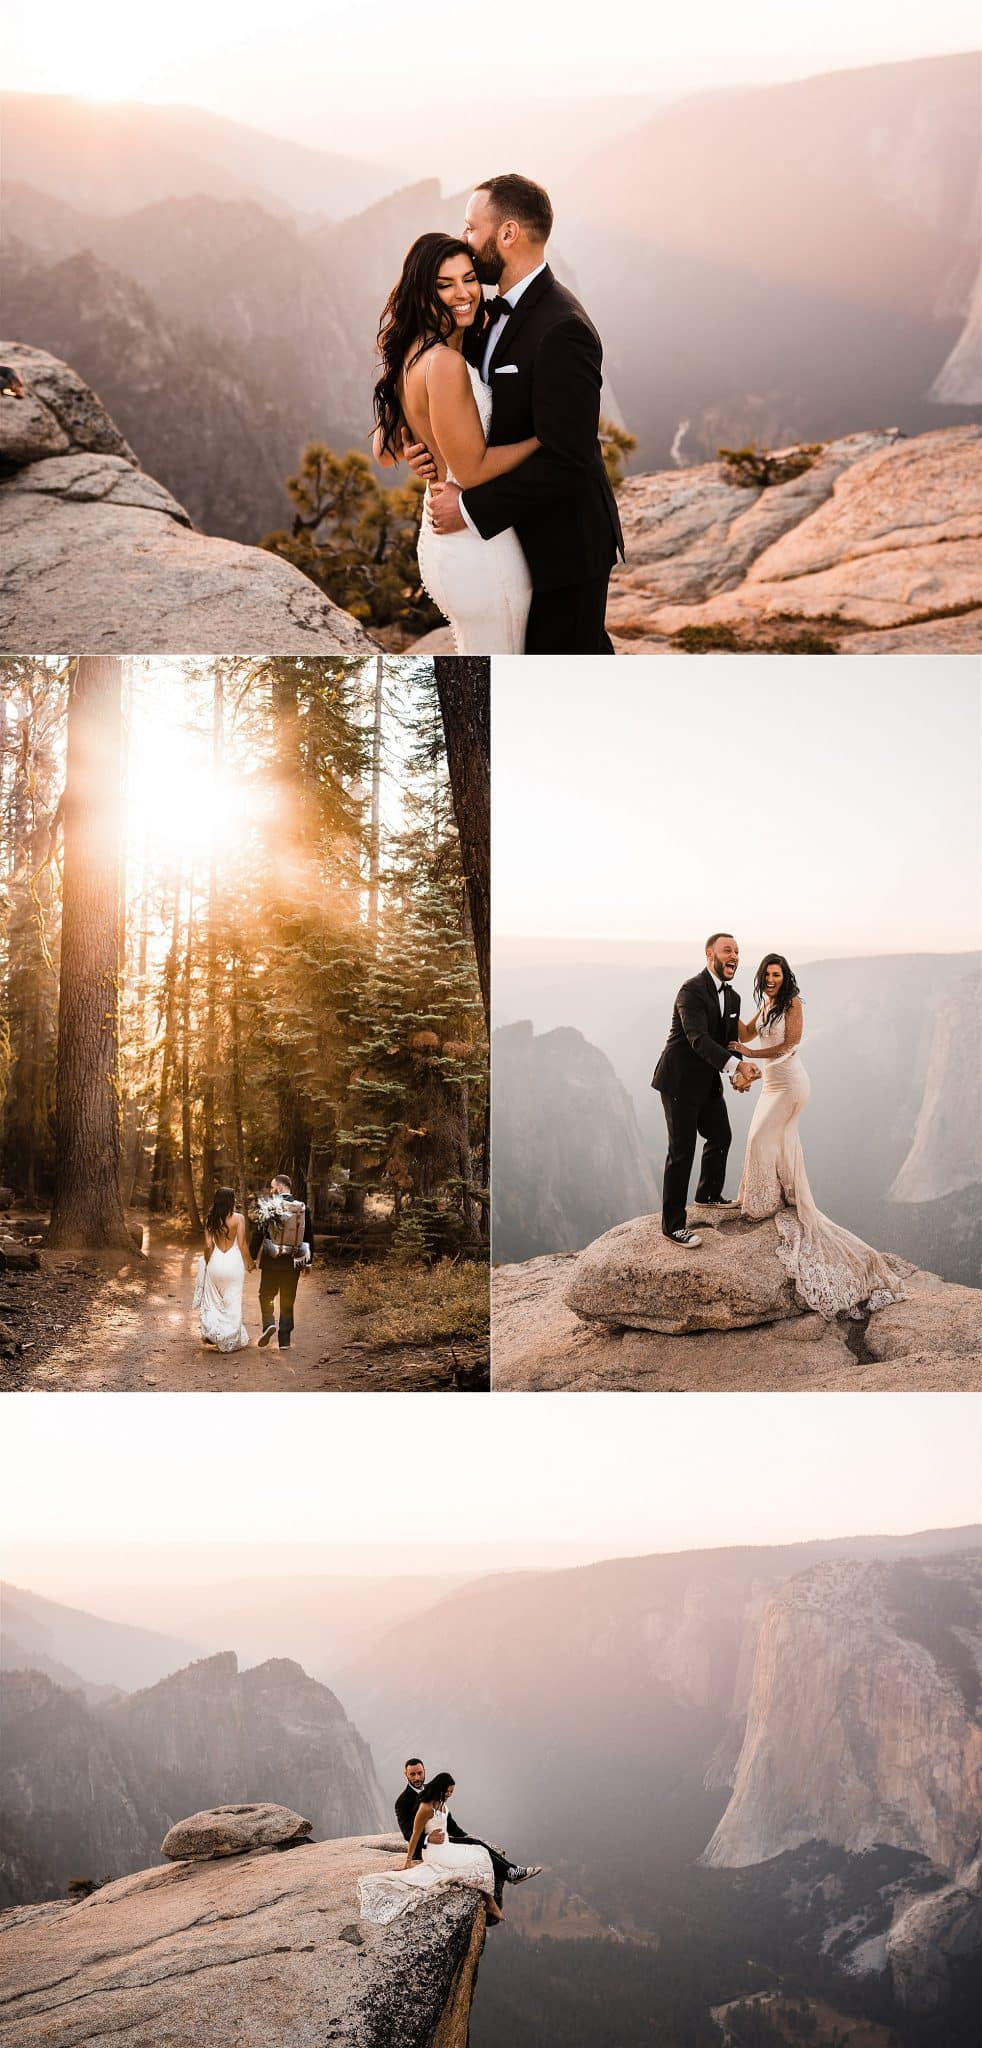 Taft_Point_Elopement_The_Foxes_Photography_0001.jpg